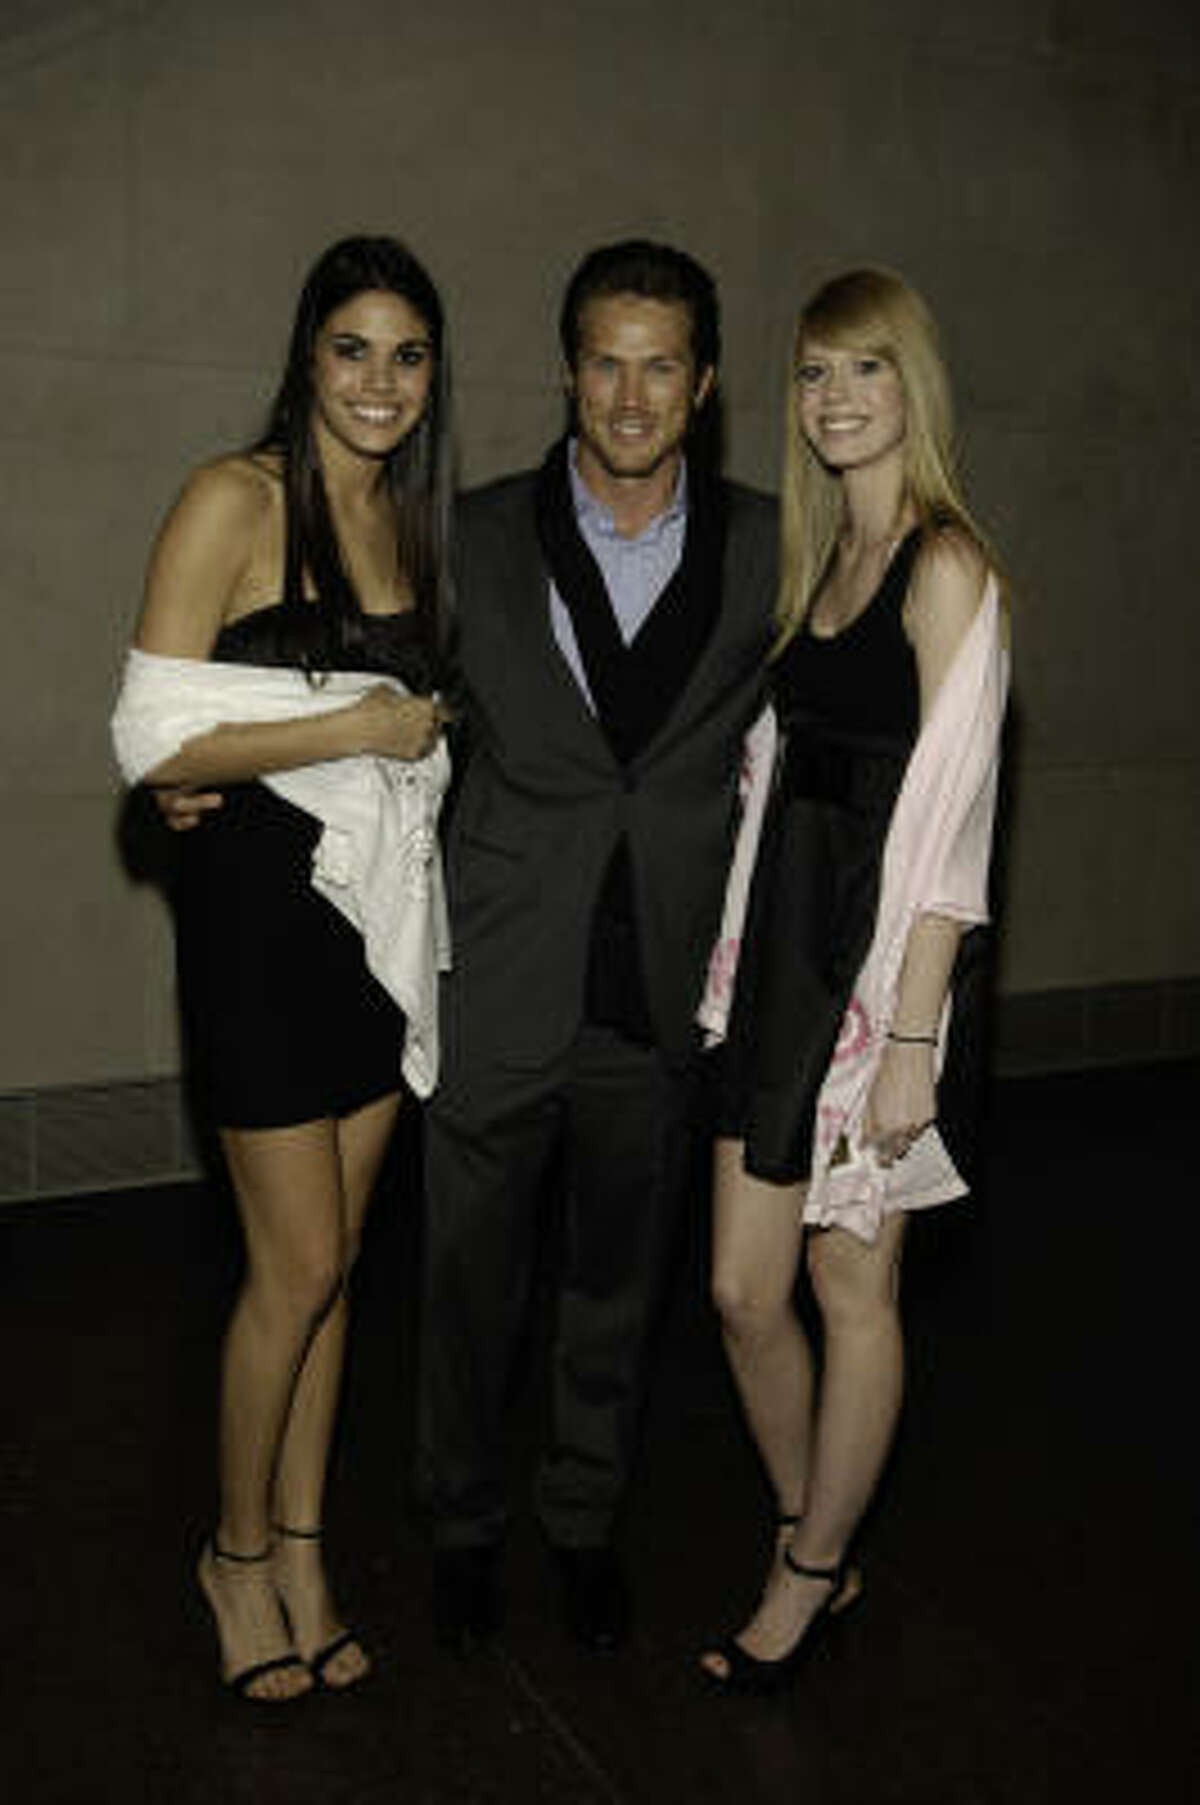 """Matin's friend, actor Jason Lewis (Samantha's boyfriend in """"Sex and the City"""") poses with models wearing Afghan Hands scarves at the Museum of Fine Arts Houston."""